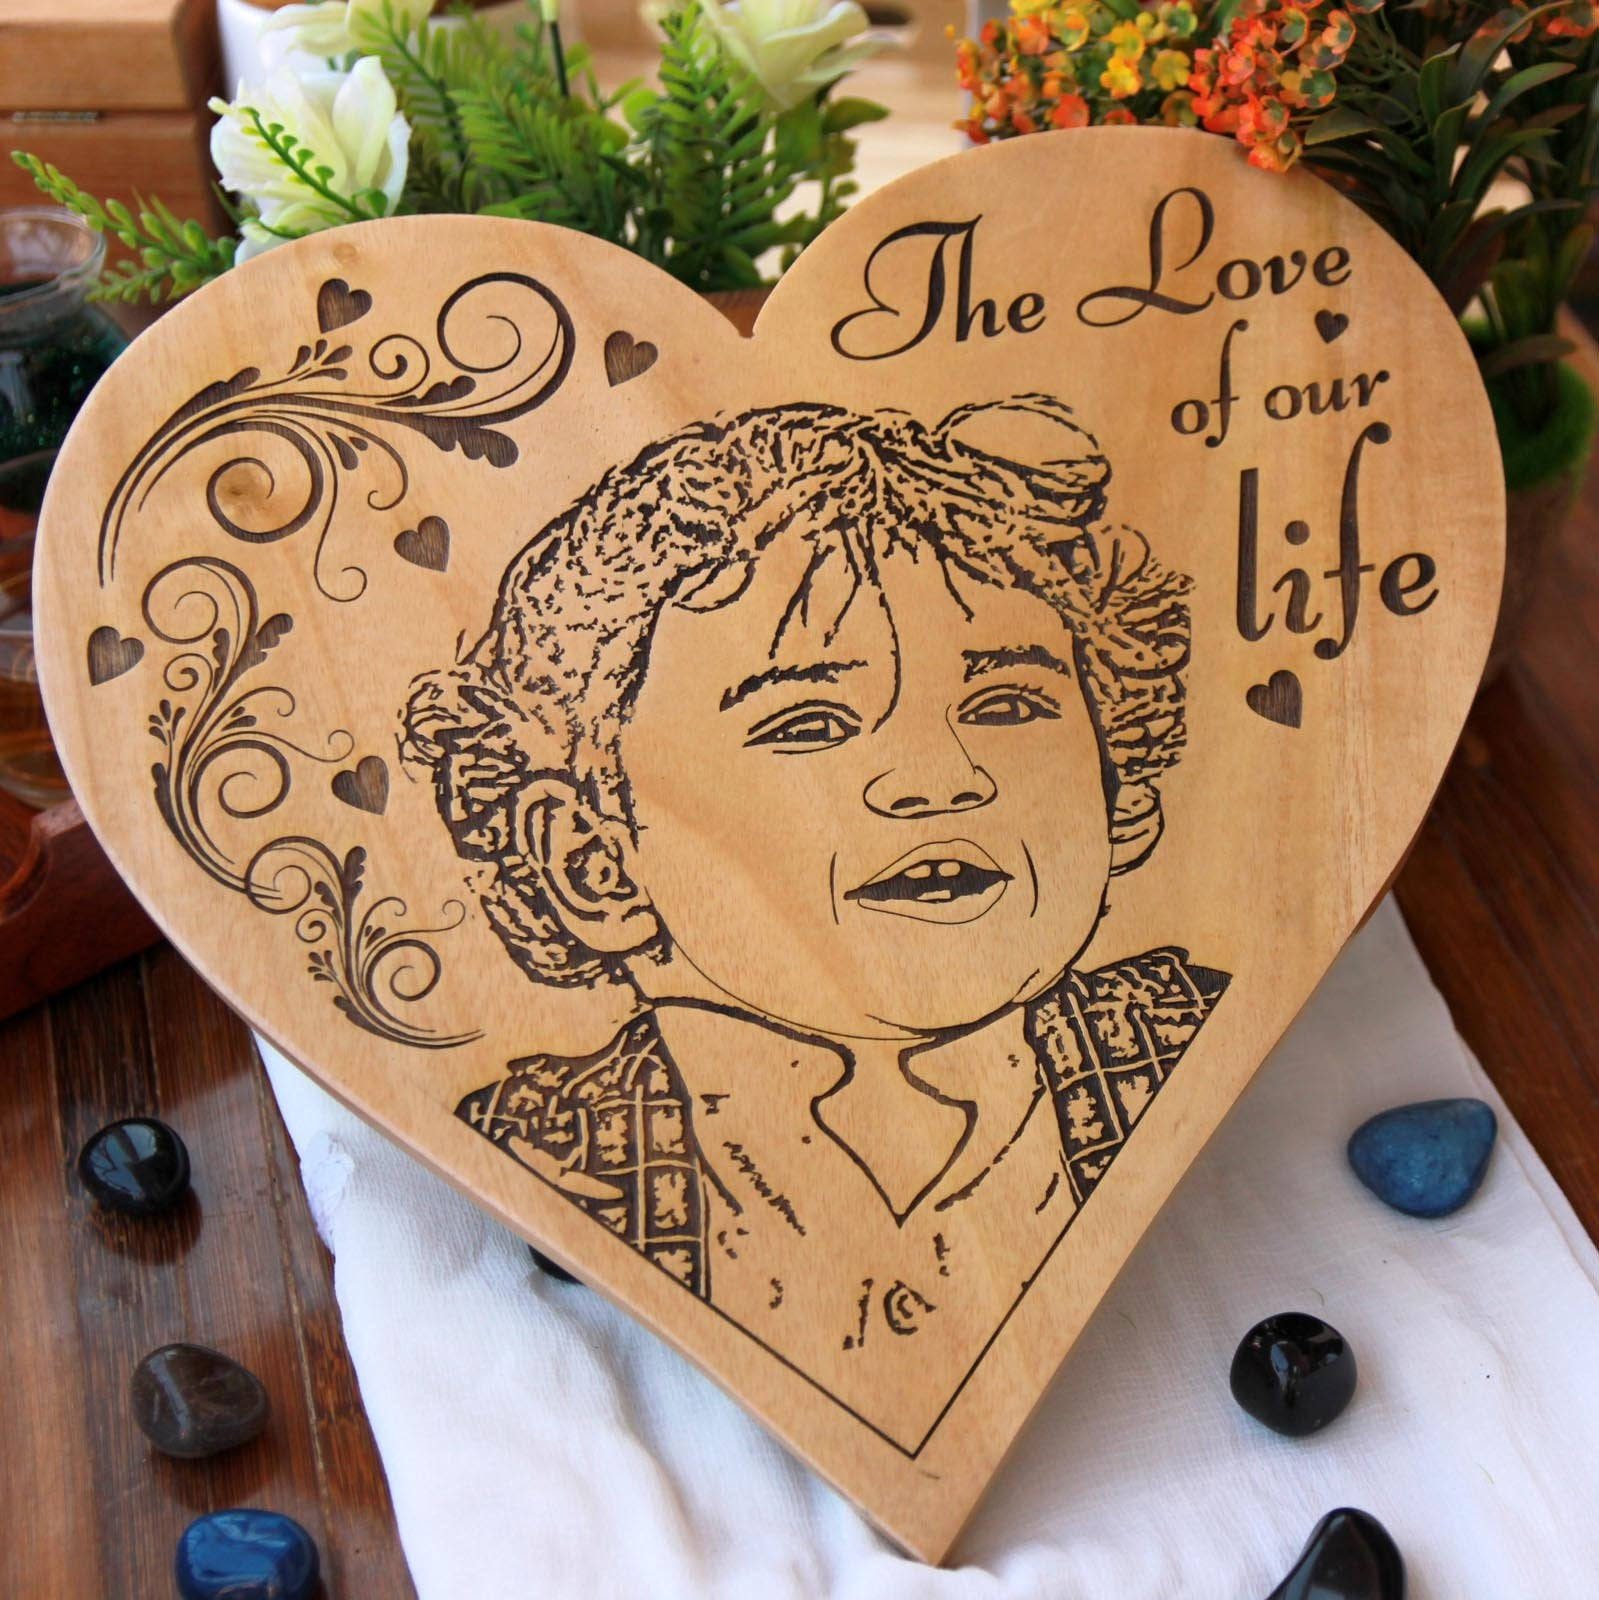 Love Of Our Life Wood Engraved Photo. This Heart-Shaped Wooden Photo Frame Engarved With baby Photo is one of the best gifts for new parents. This photo on wood is one of the most sentimental gifts for new parents.